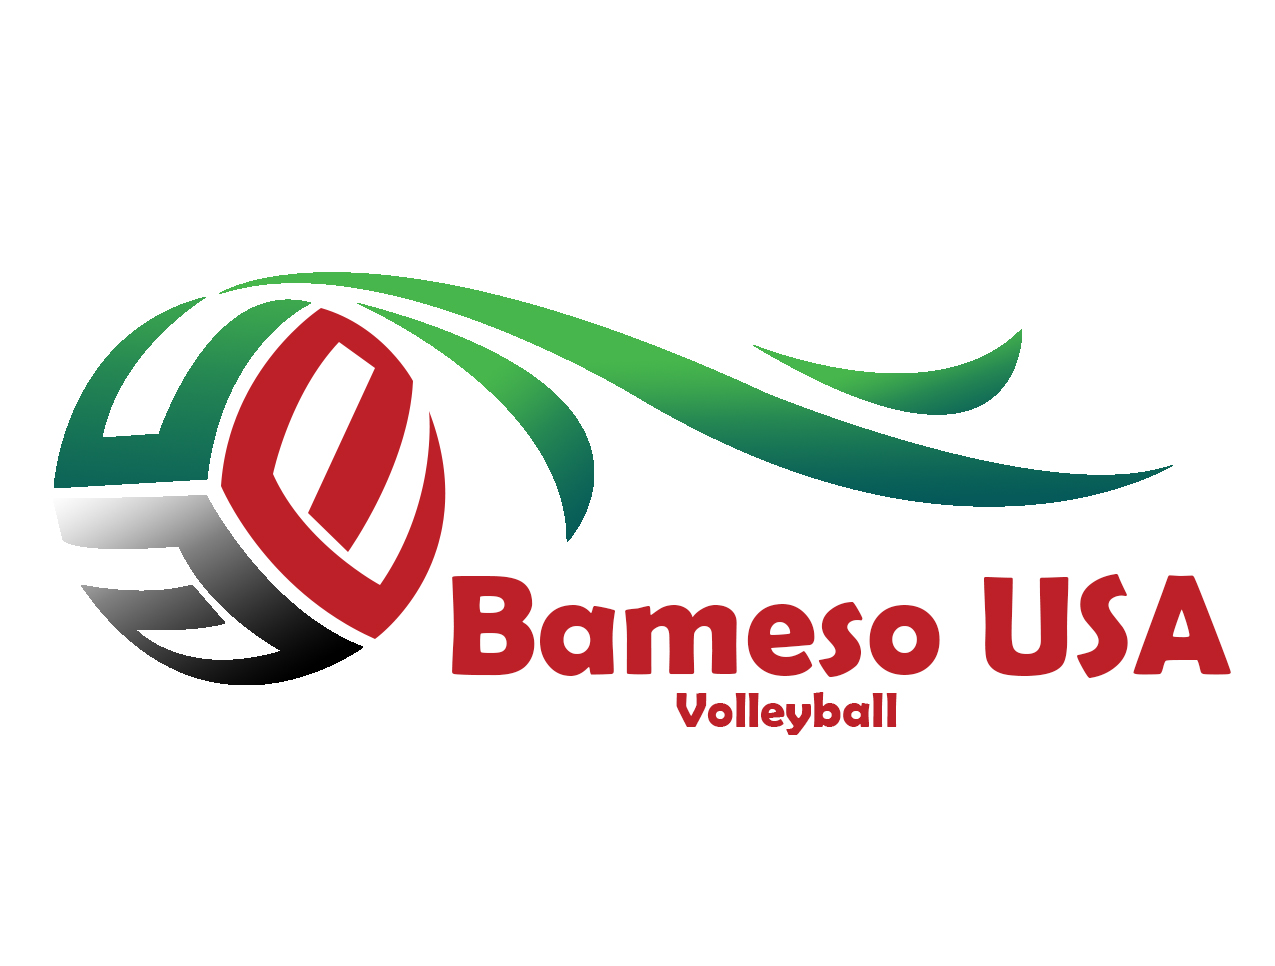 Bameso USA Volleyball